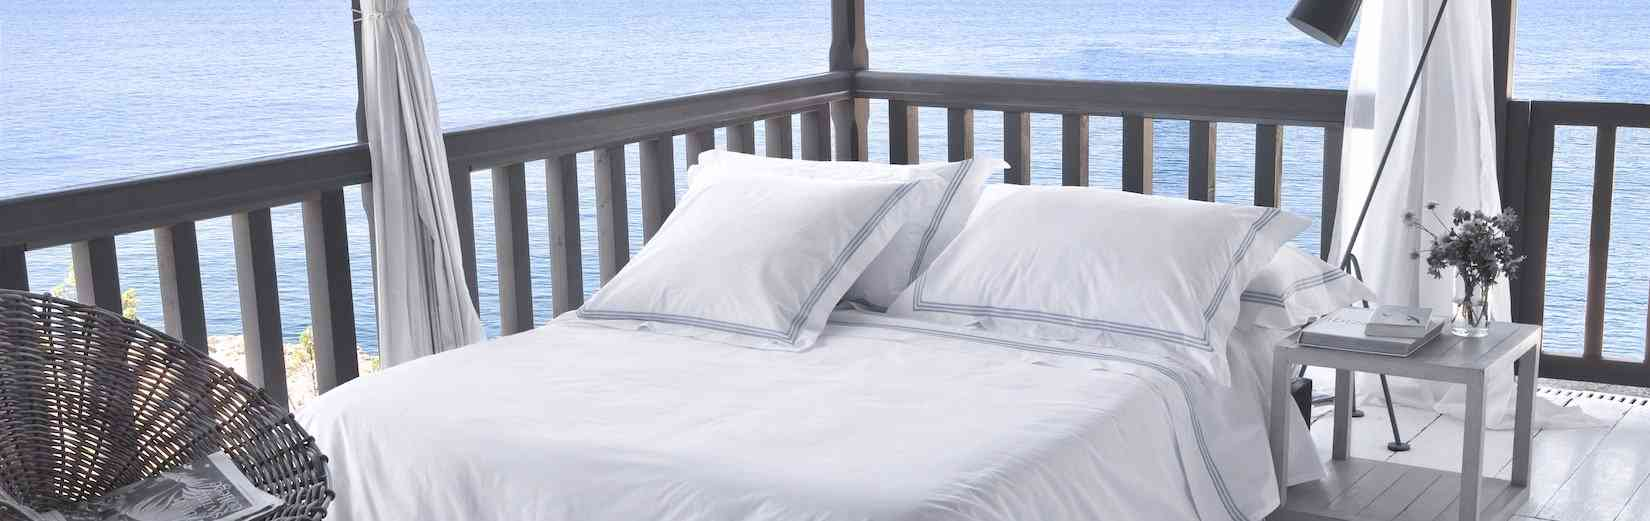 180cm Bed 180cm Size Bed Fitted Sheets White Free Shipping